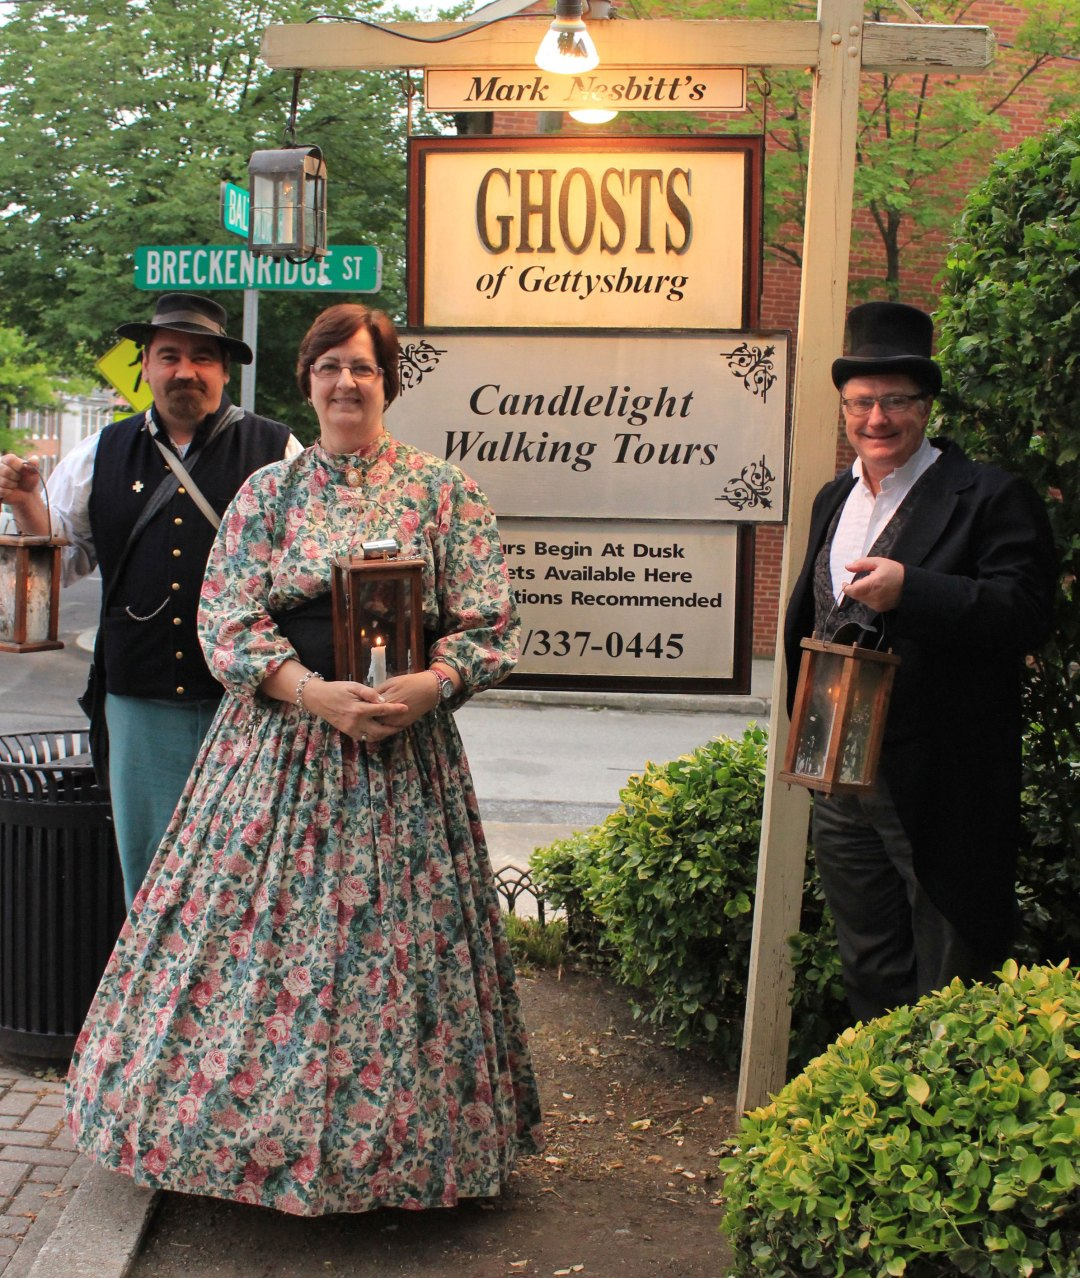 Ghosts of Gettysburg Guides with Ghosts of Gettysburg sign